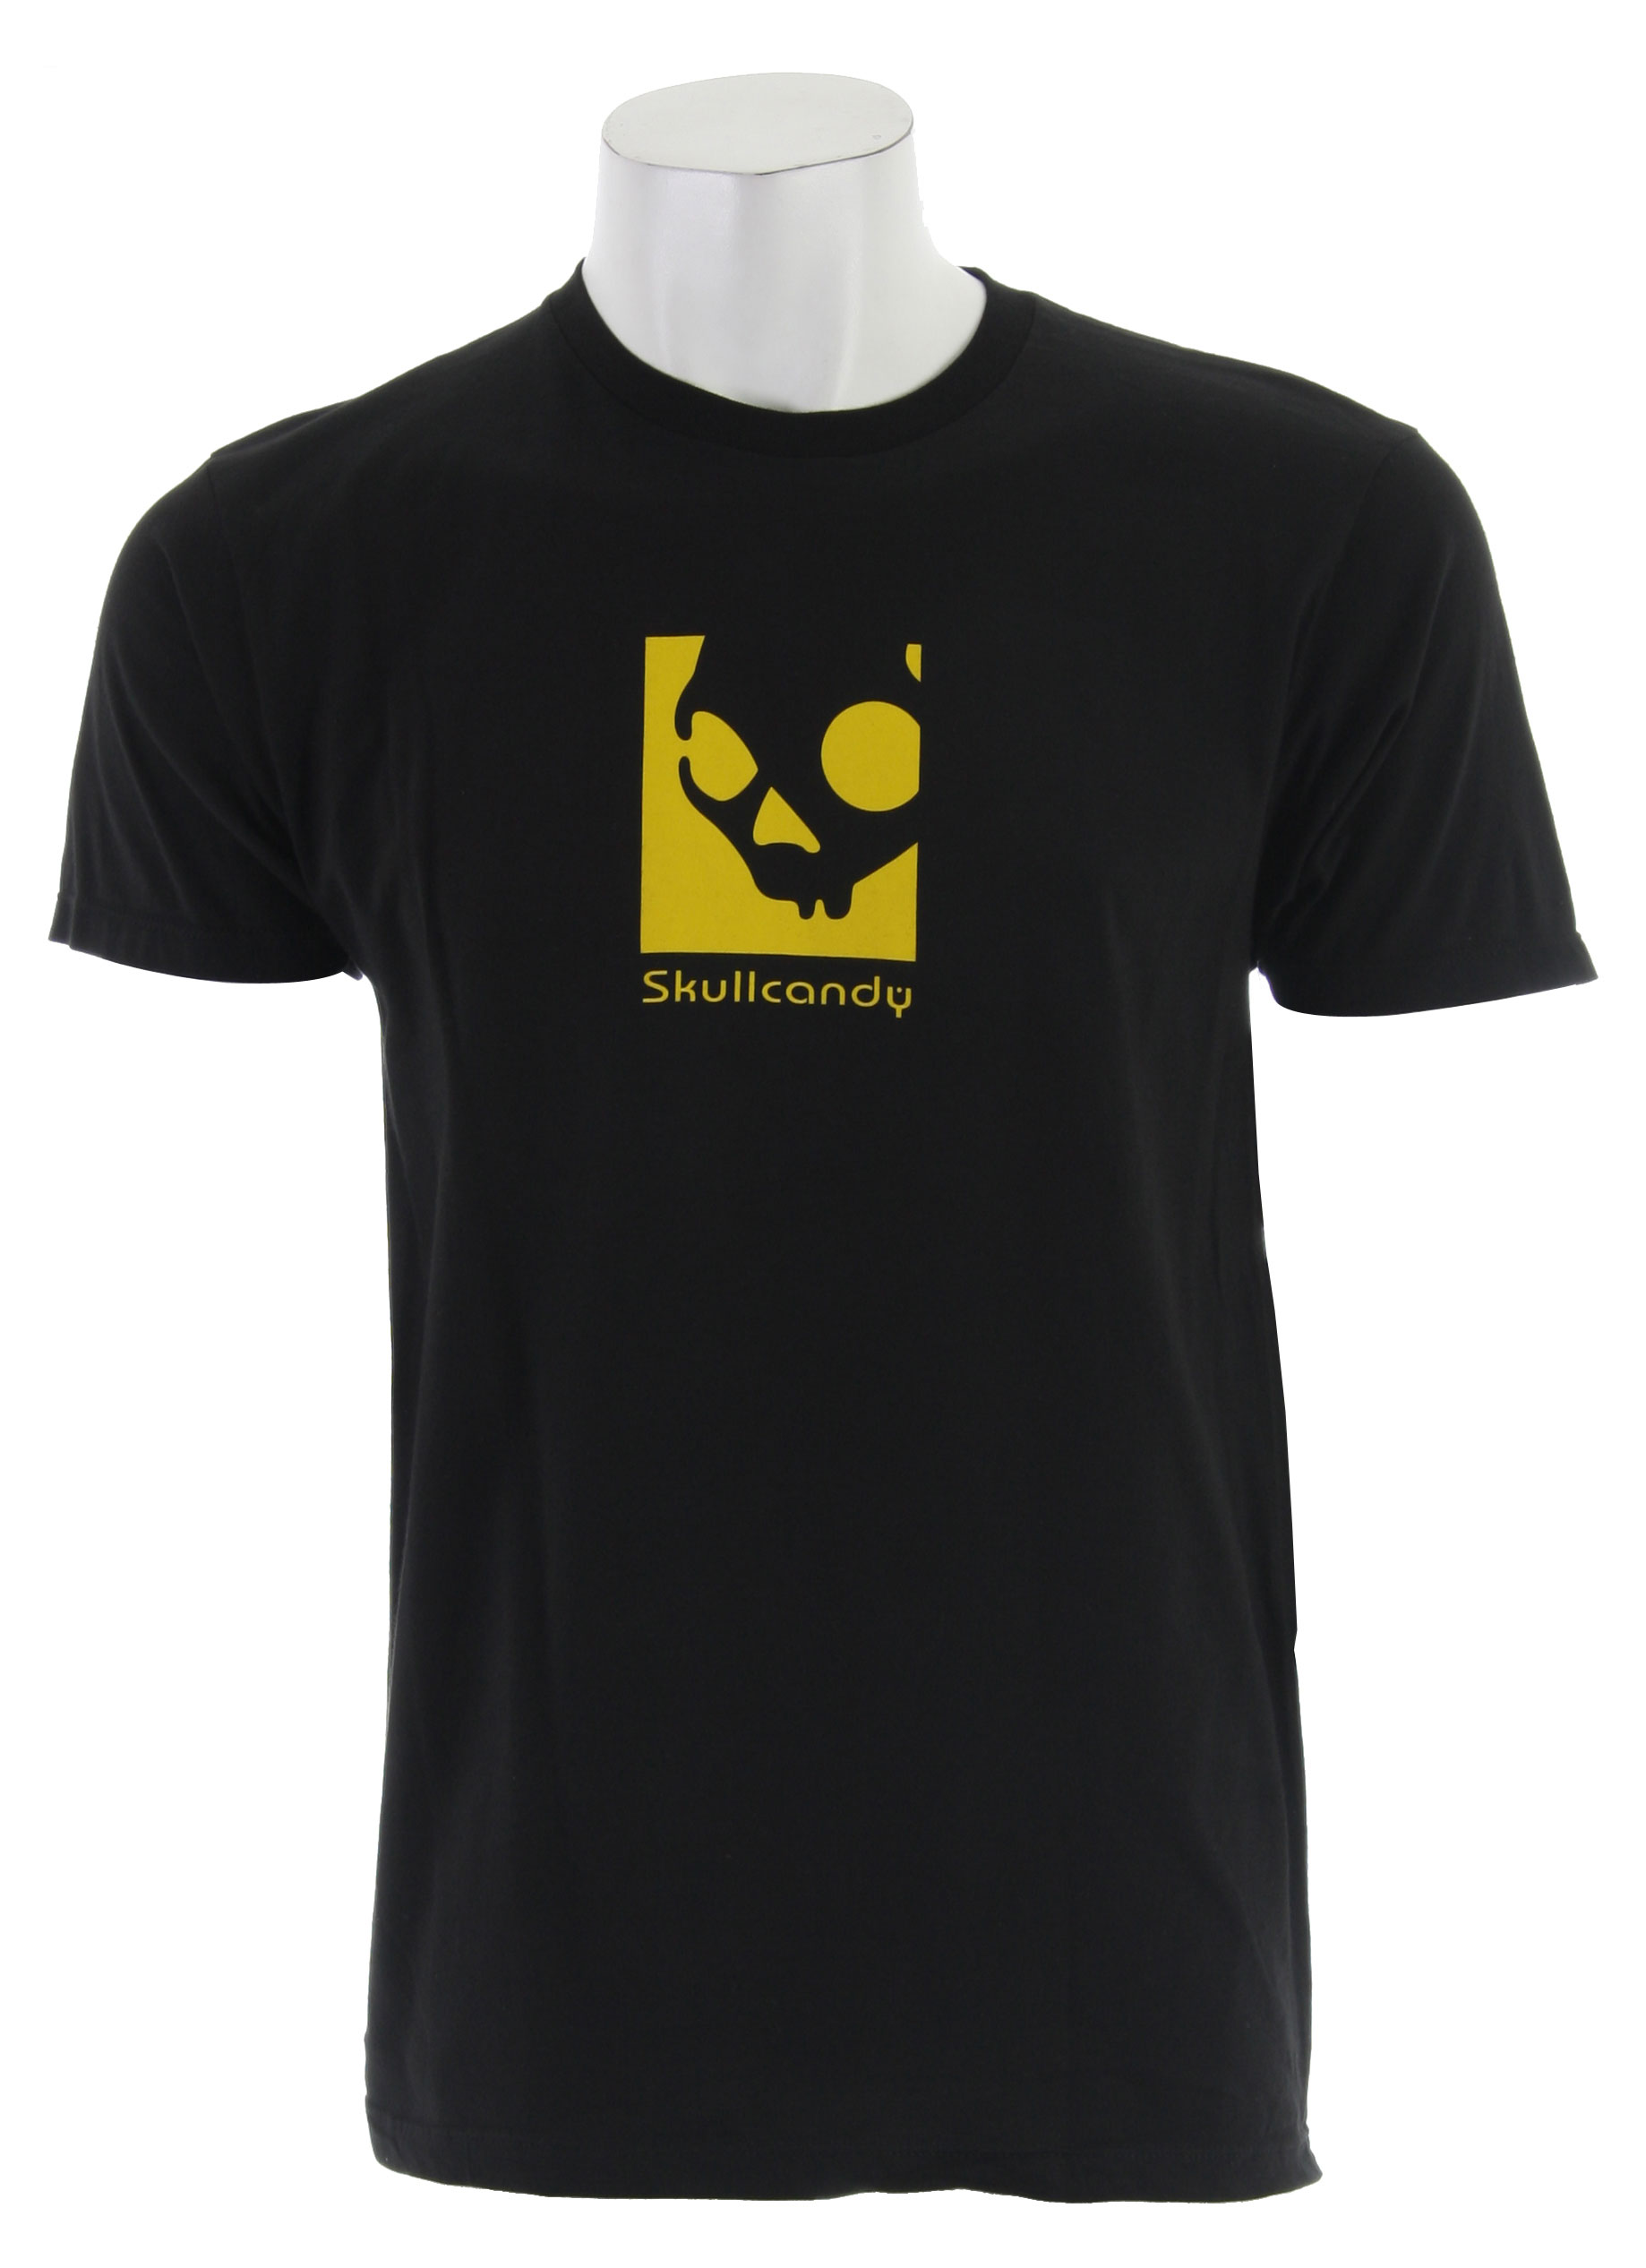 Corpo' is Italian for 'Body,' which is a song by P.I.L. It sounds even better when Johnny Rotten sings it. The Skullcandy Slim Corpo T-Shirt.Key Features of the Skullcandy Slim Corpo T-Shirt: Slim Fit 100% Cotton - $21.99